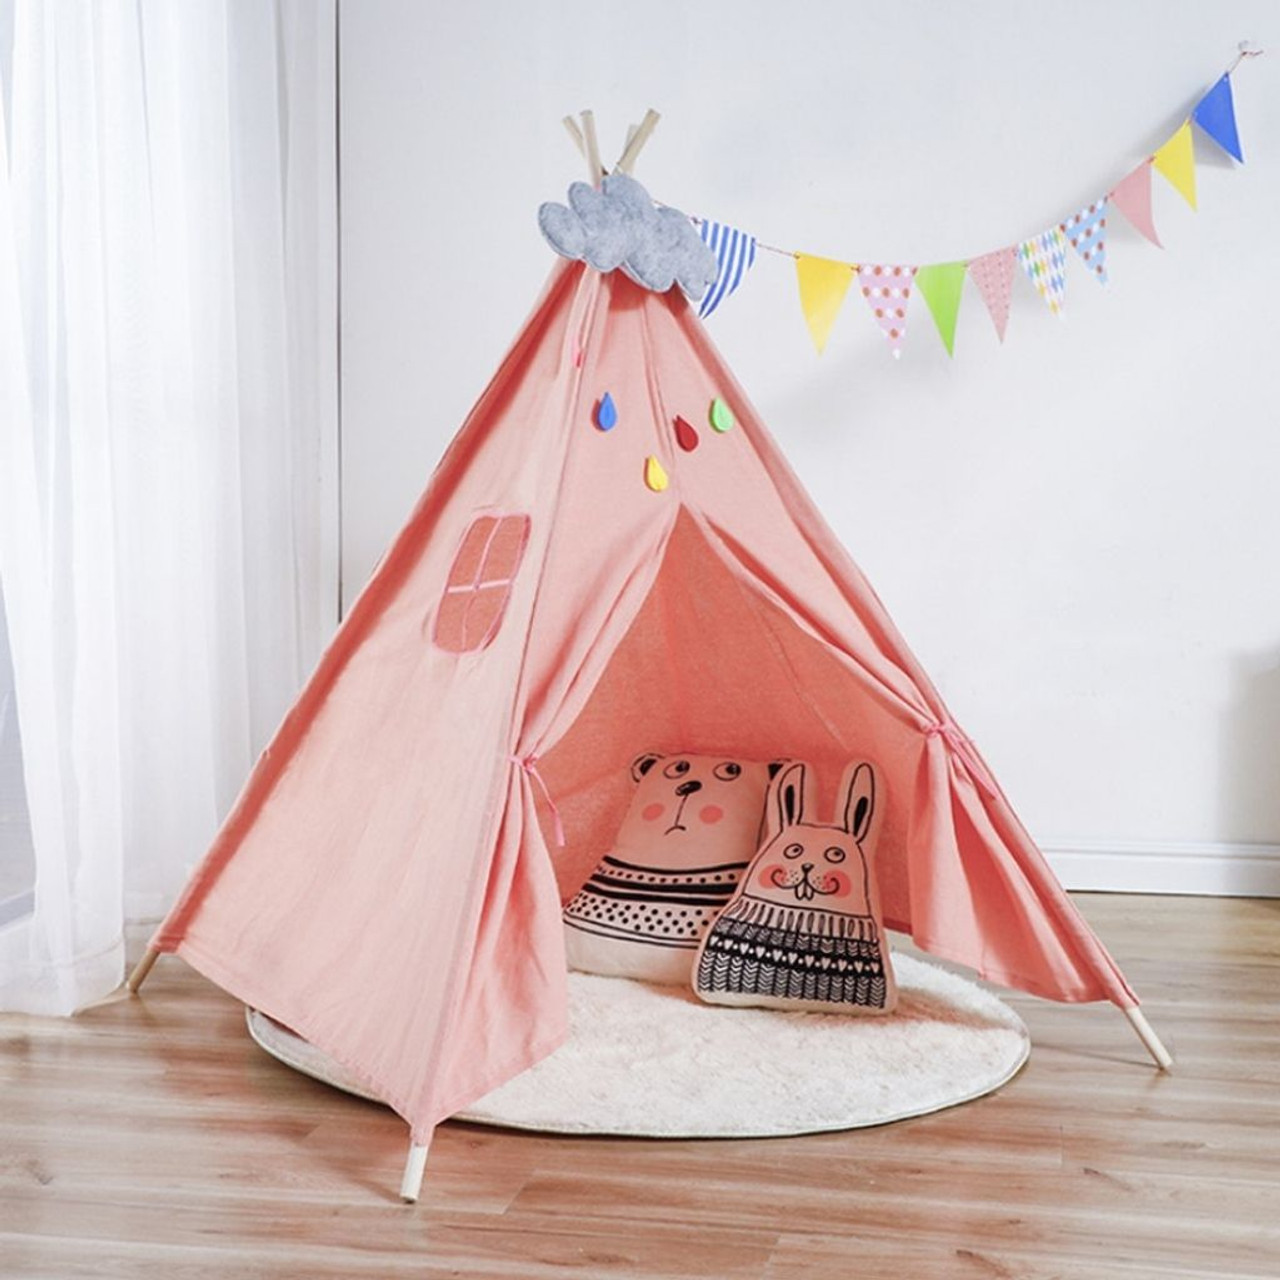 Kids' Indoor Tipi Tent with Natural Wood Poles! .99 with free shipping at UntilGone!